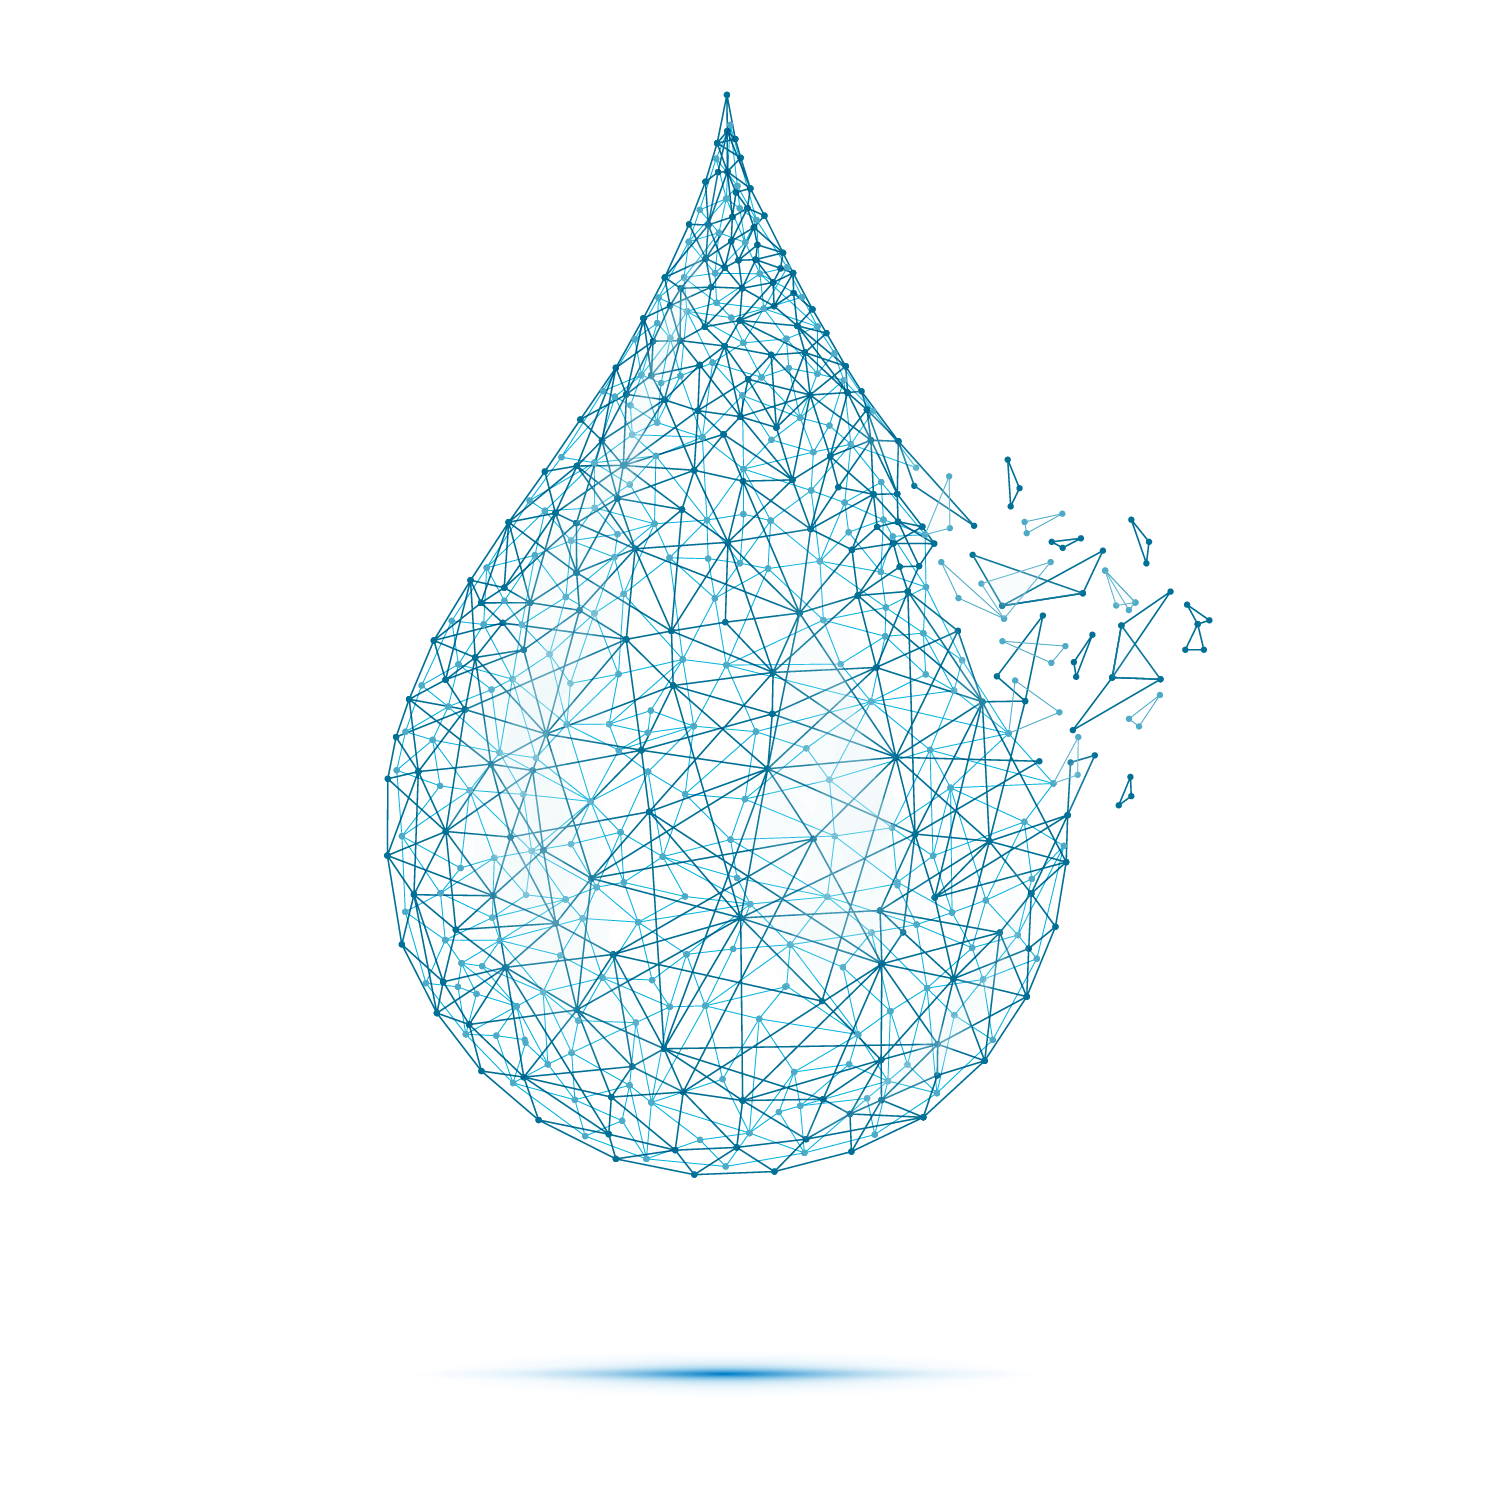 For a Fresh, Water Future - Cleveland Water Alliance is committed to protecting and preserving Northeast Ohio's immense natural water resources for generations to come.